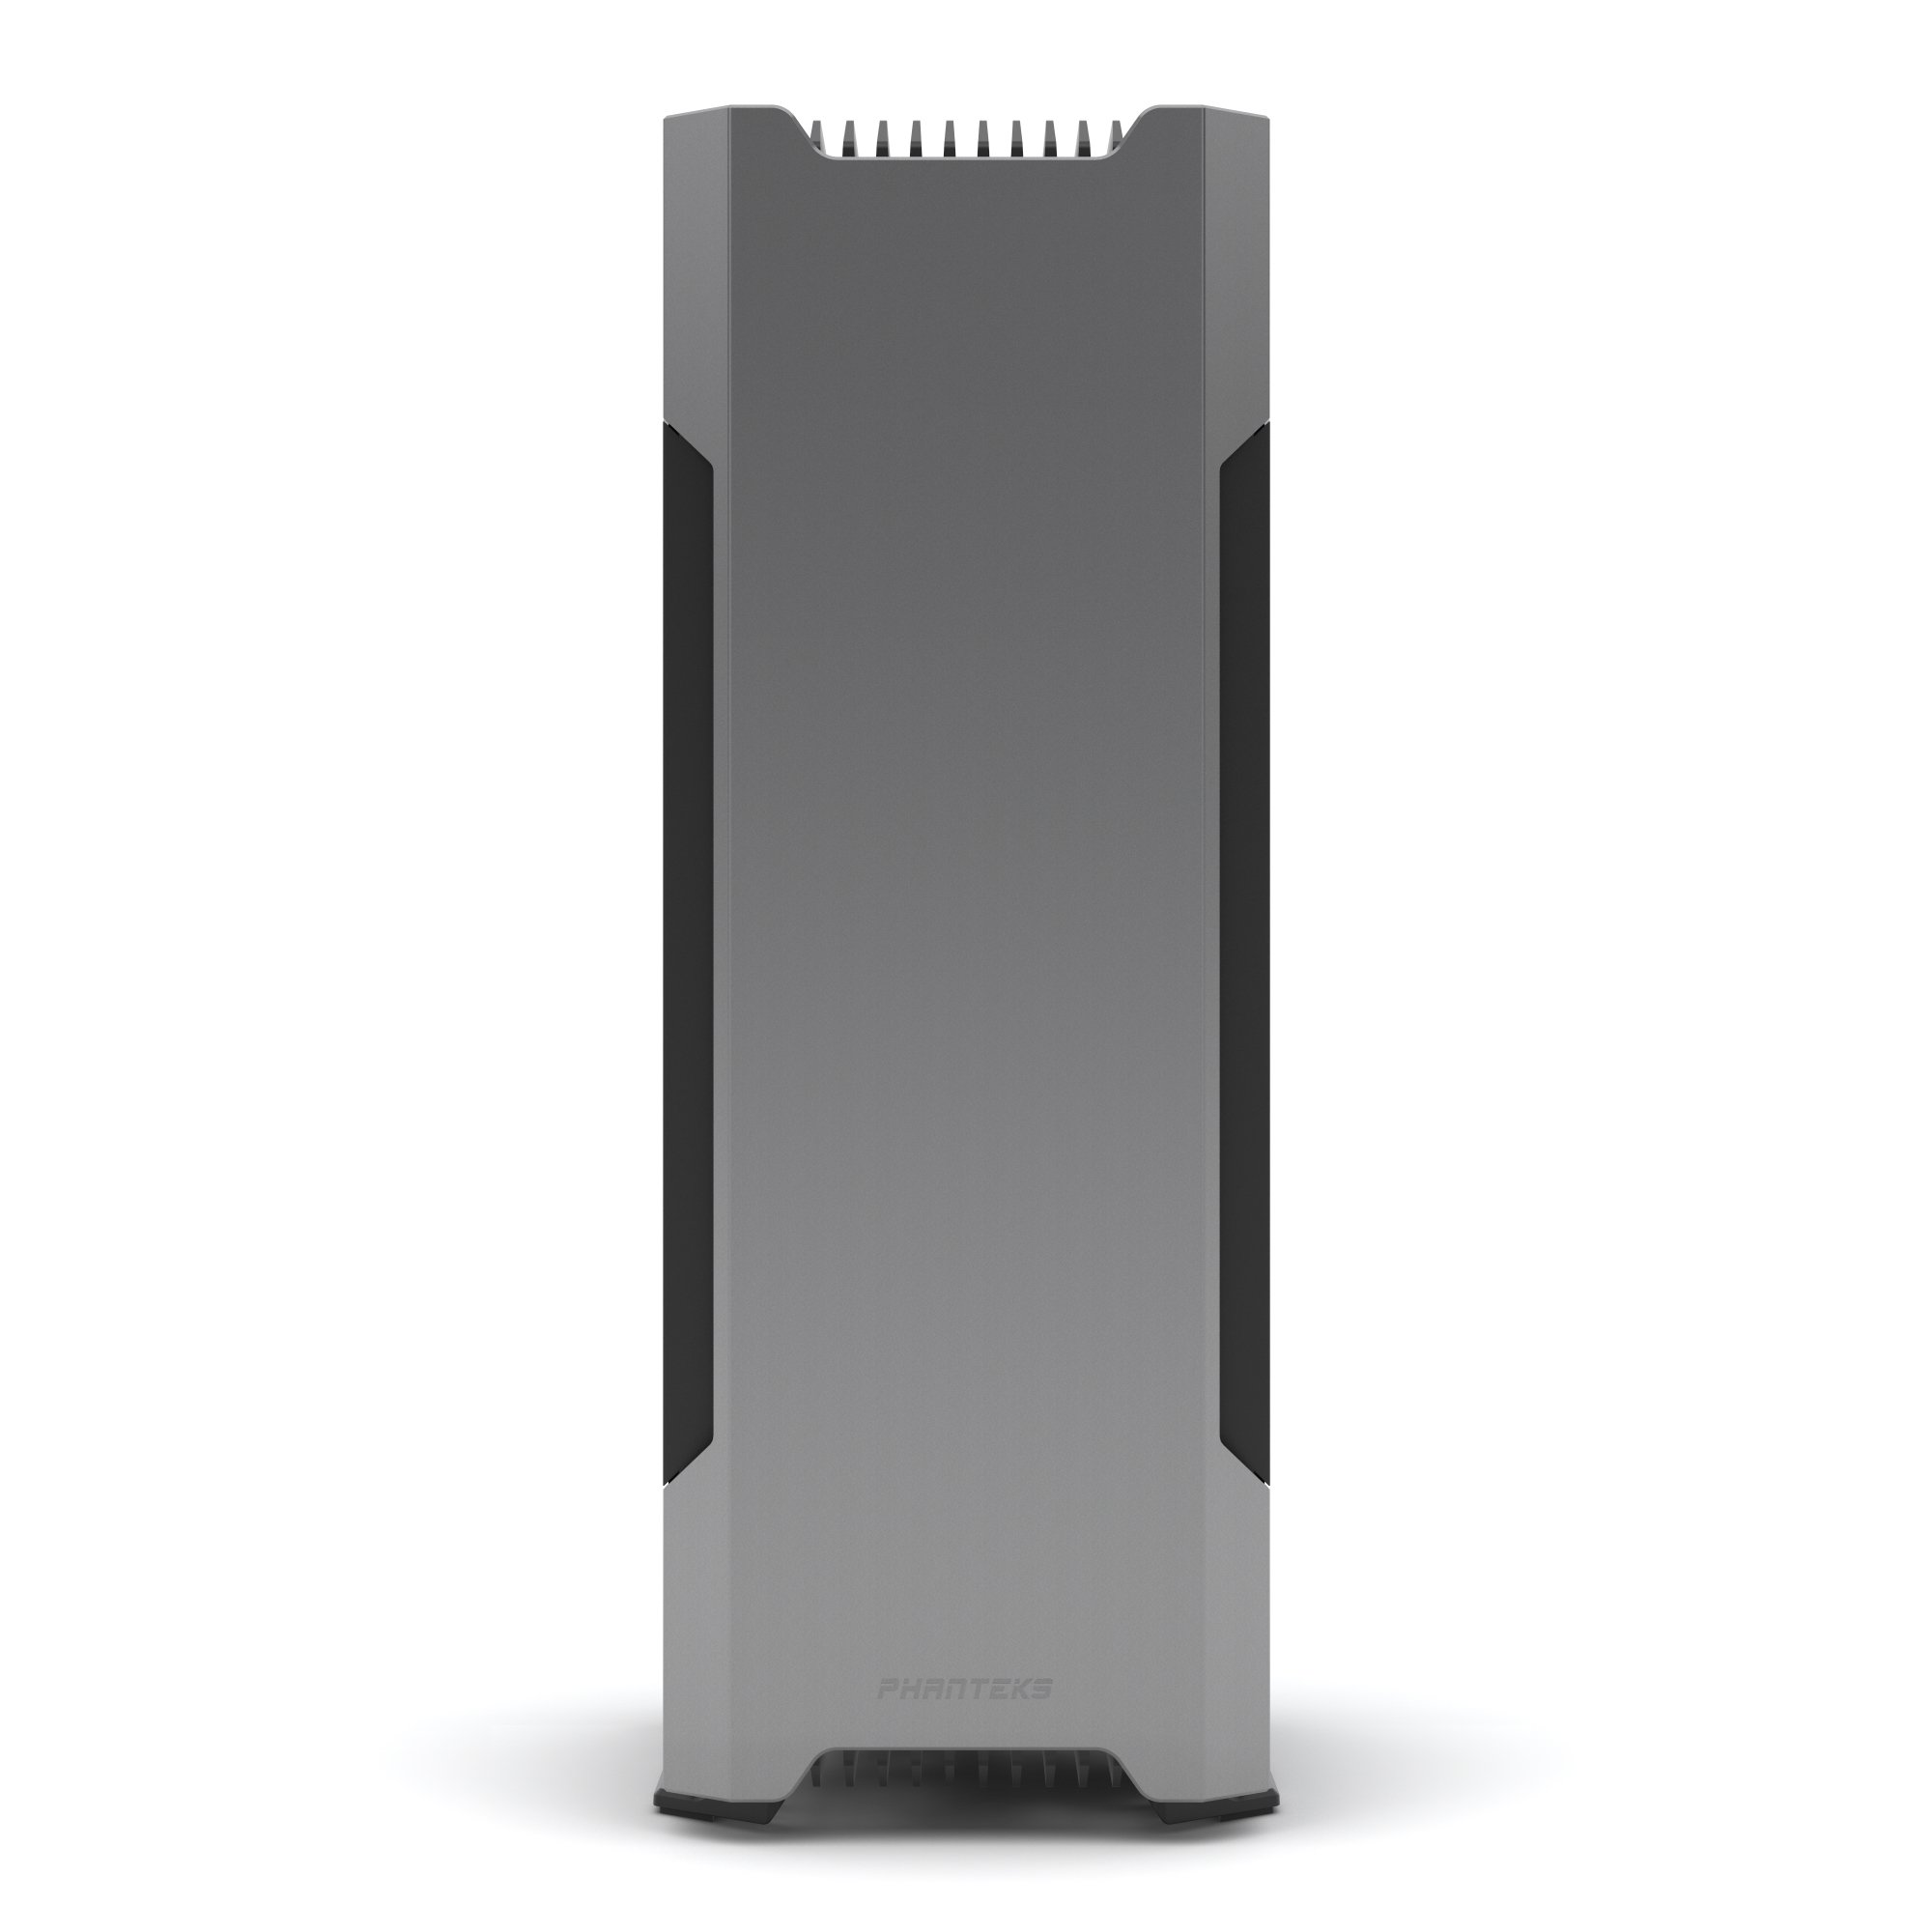 Phanteks PH-ES217E_AG EVOLV SHIFT Mini ITX Dual Tempered Glass for AIO water cooling Anthracite Gray Cases by Phanteks (Image #3)